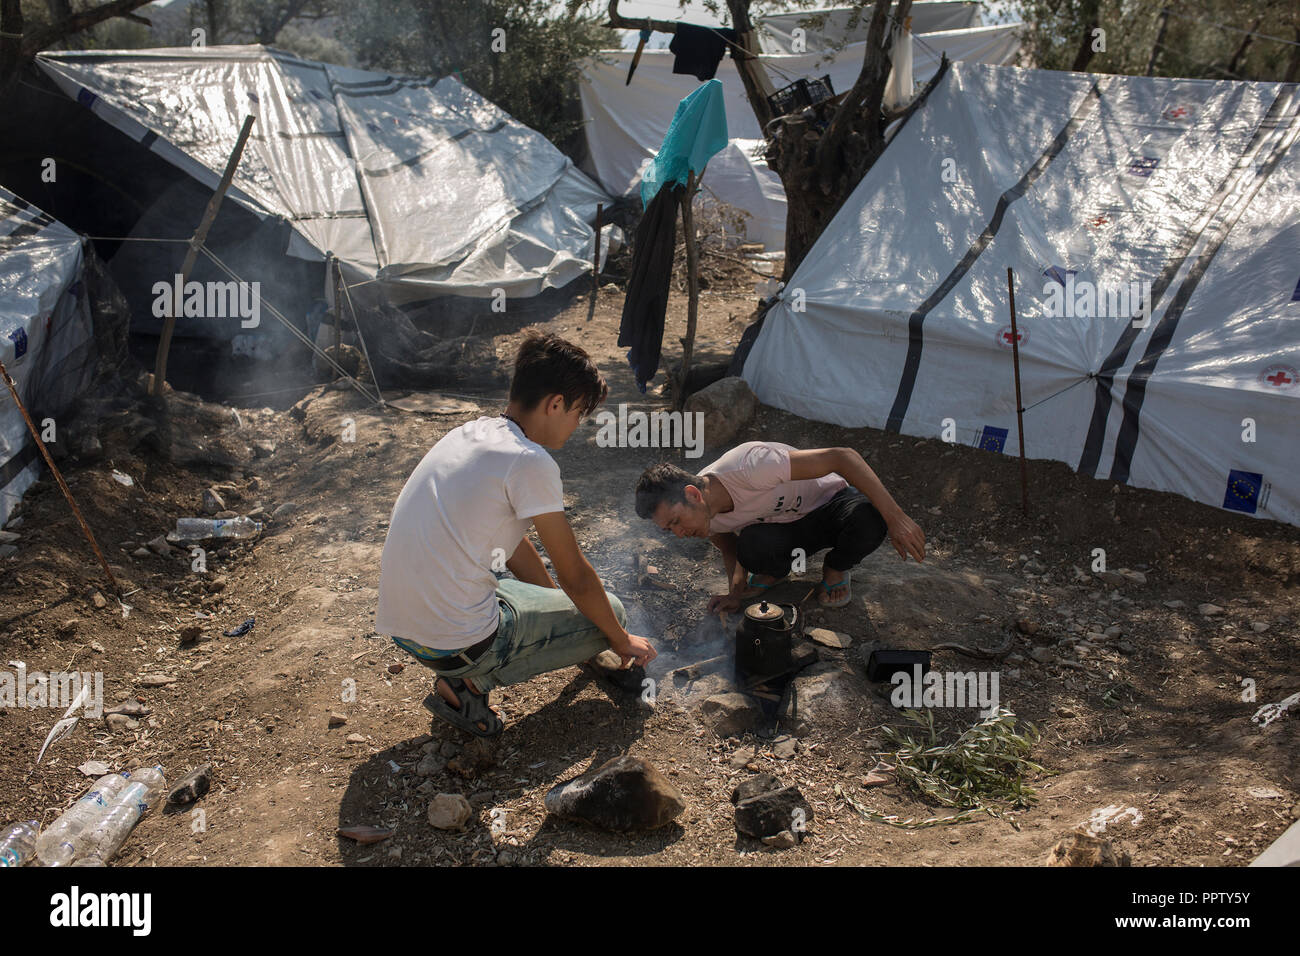 Moira, Greece. 25th Sep, 2018. Two young asylum seekers from Afghanistan prepare tea outside their tent in a temporary camp next to Moria's refugee camp. (to dpa 'Moria: The camp of shame on the island of Lesbos' of 28.09.2018) Credit: Socrates Baltagiannis/dpa/Alamy Live News - Stock Image